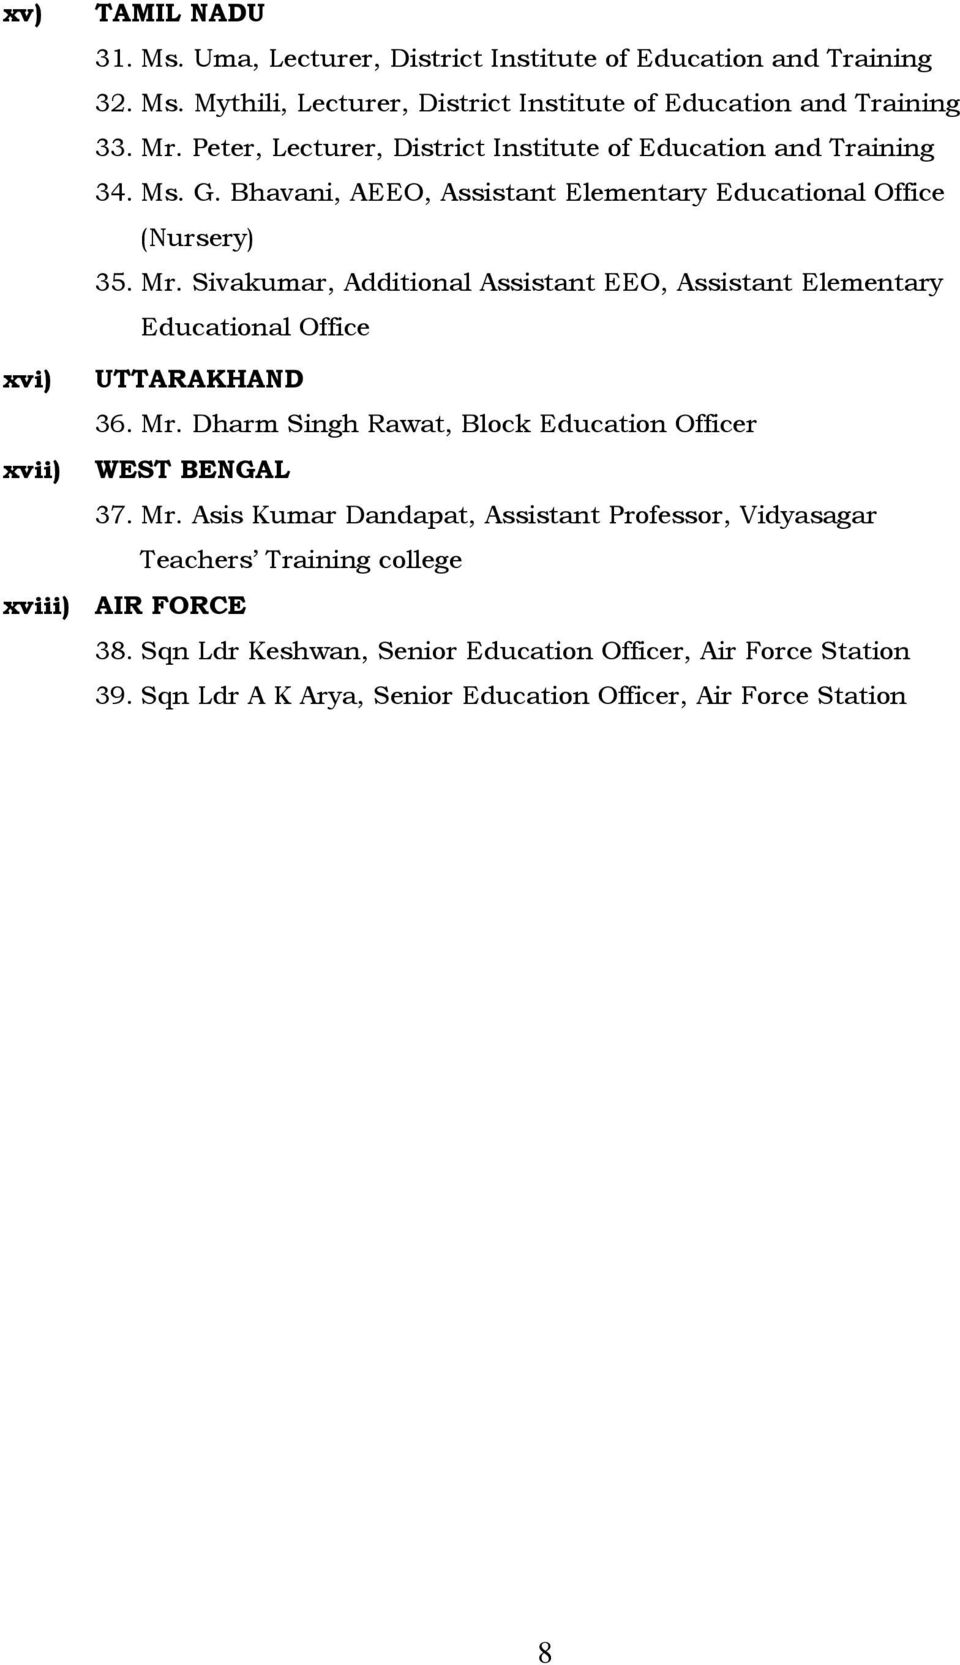 Sivakumar, Additional Assistant EEO, Assistant Elementary Educational Office xvi) UTTARAKHAND 36. Mr. Dharm Singh Rawat, Block Education Officer xvii) WEST BENGAL 37.